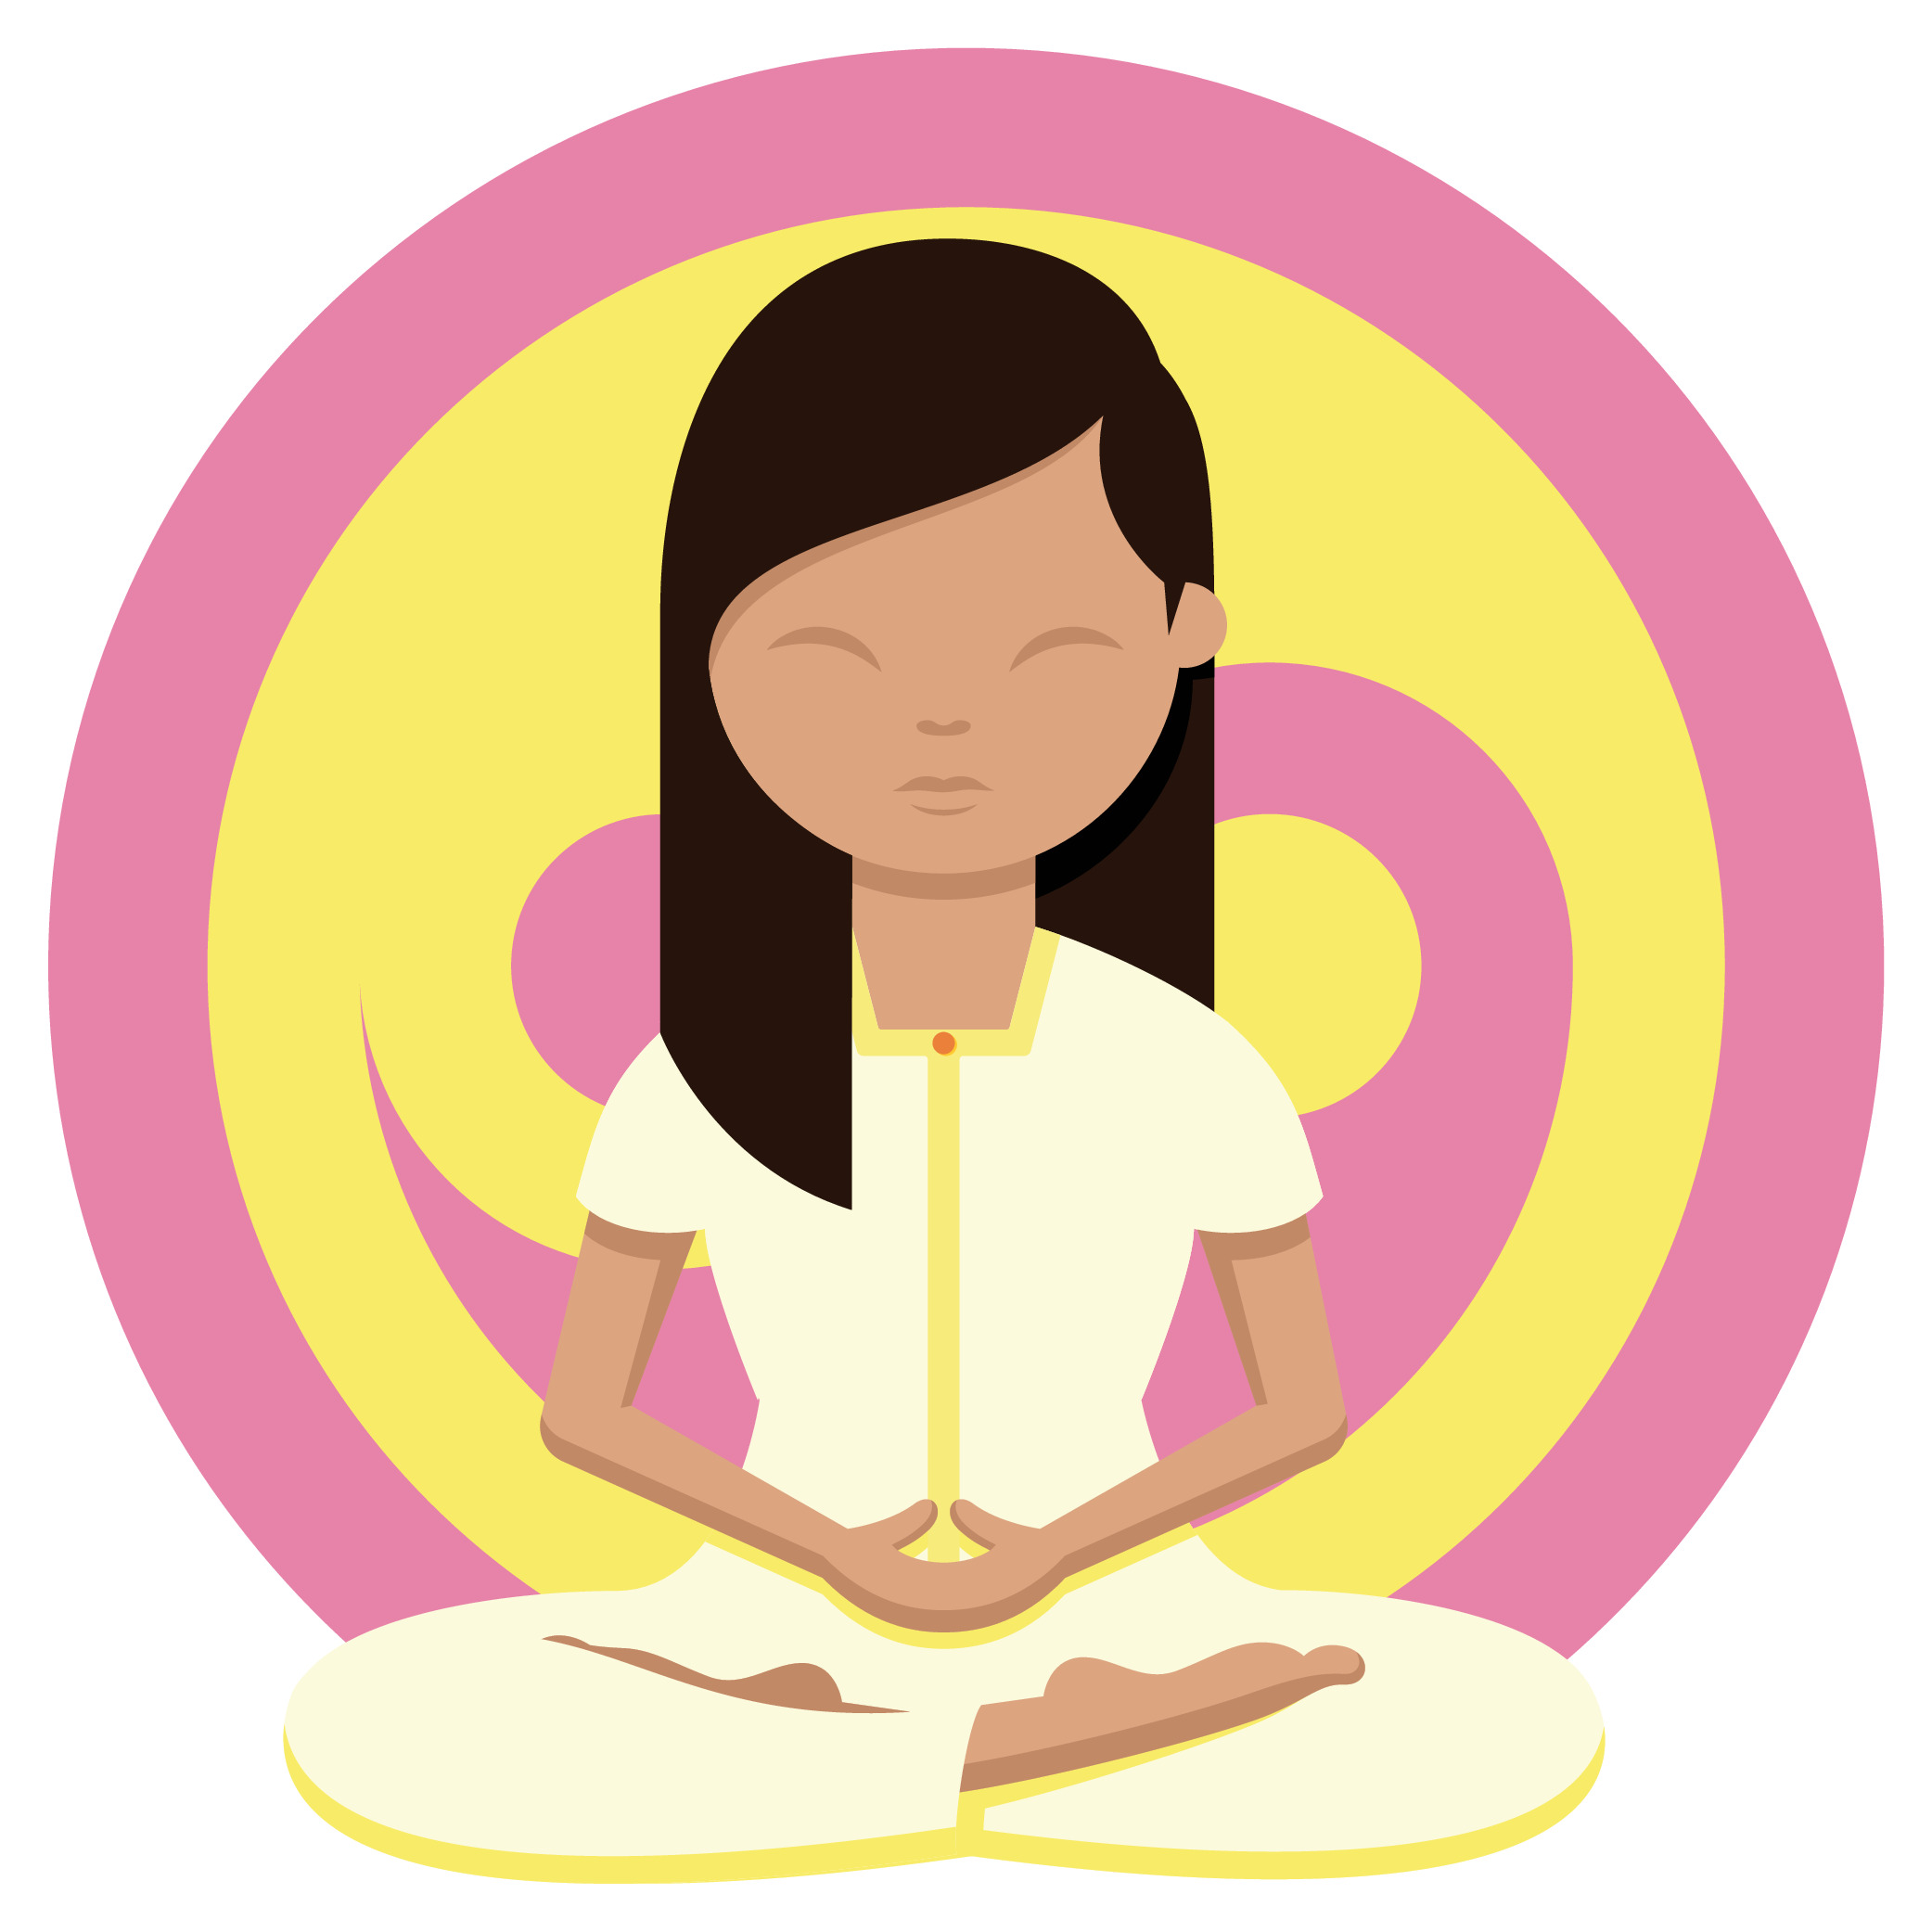 Woman meditating in front of a yellow and pink ying yang symbol with her legs crossed, hands together and eyes closed looking after herself during UCAT